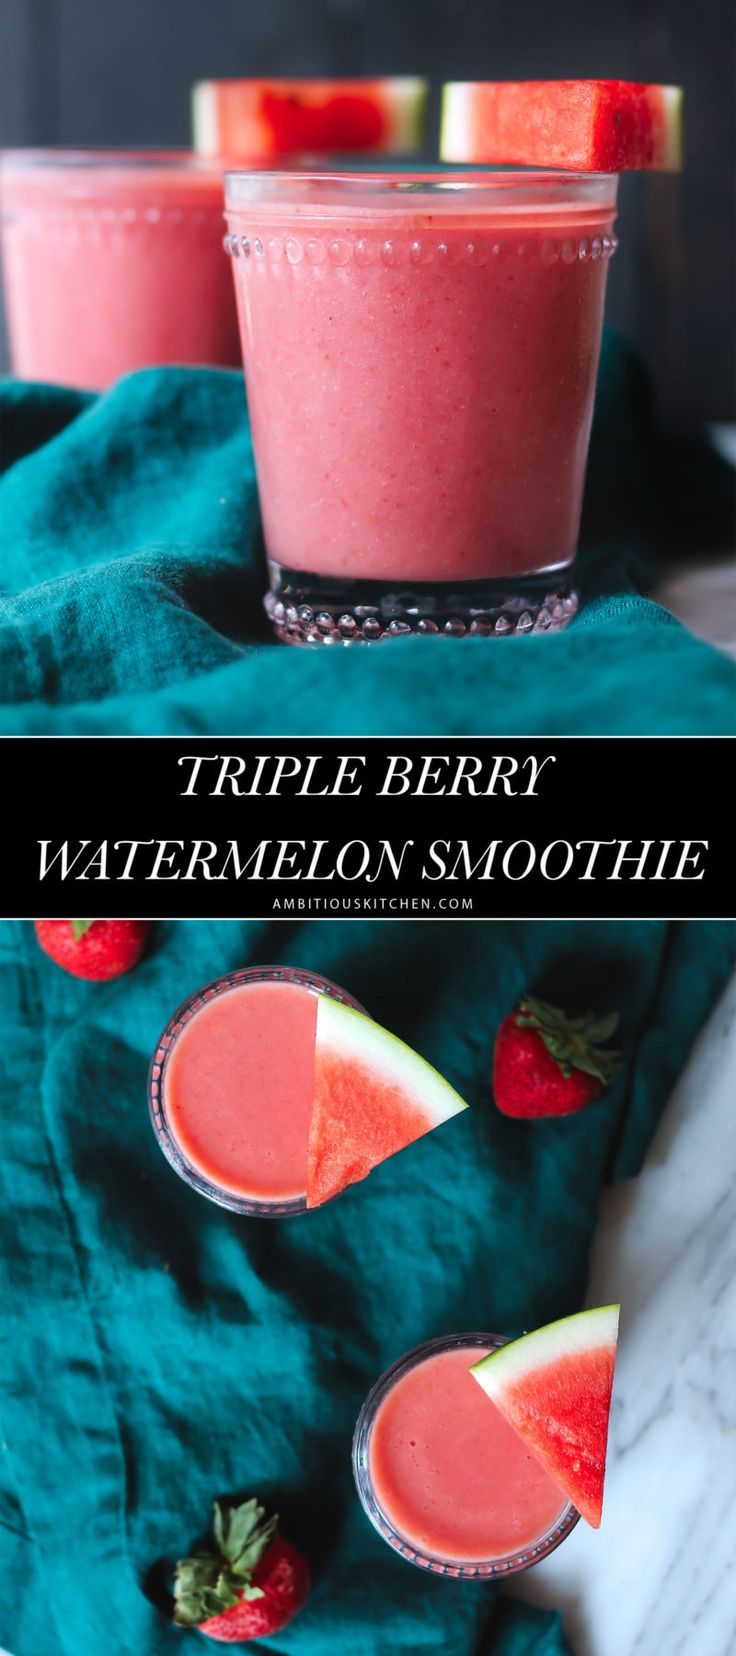 A creamy, refreshing triple berry watermelon smoothie -- use up that summer produce in this healthy smoothie recipe!